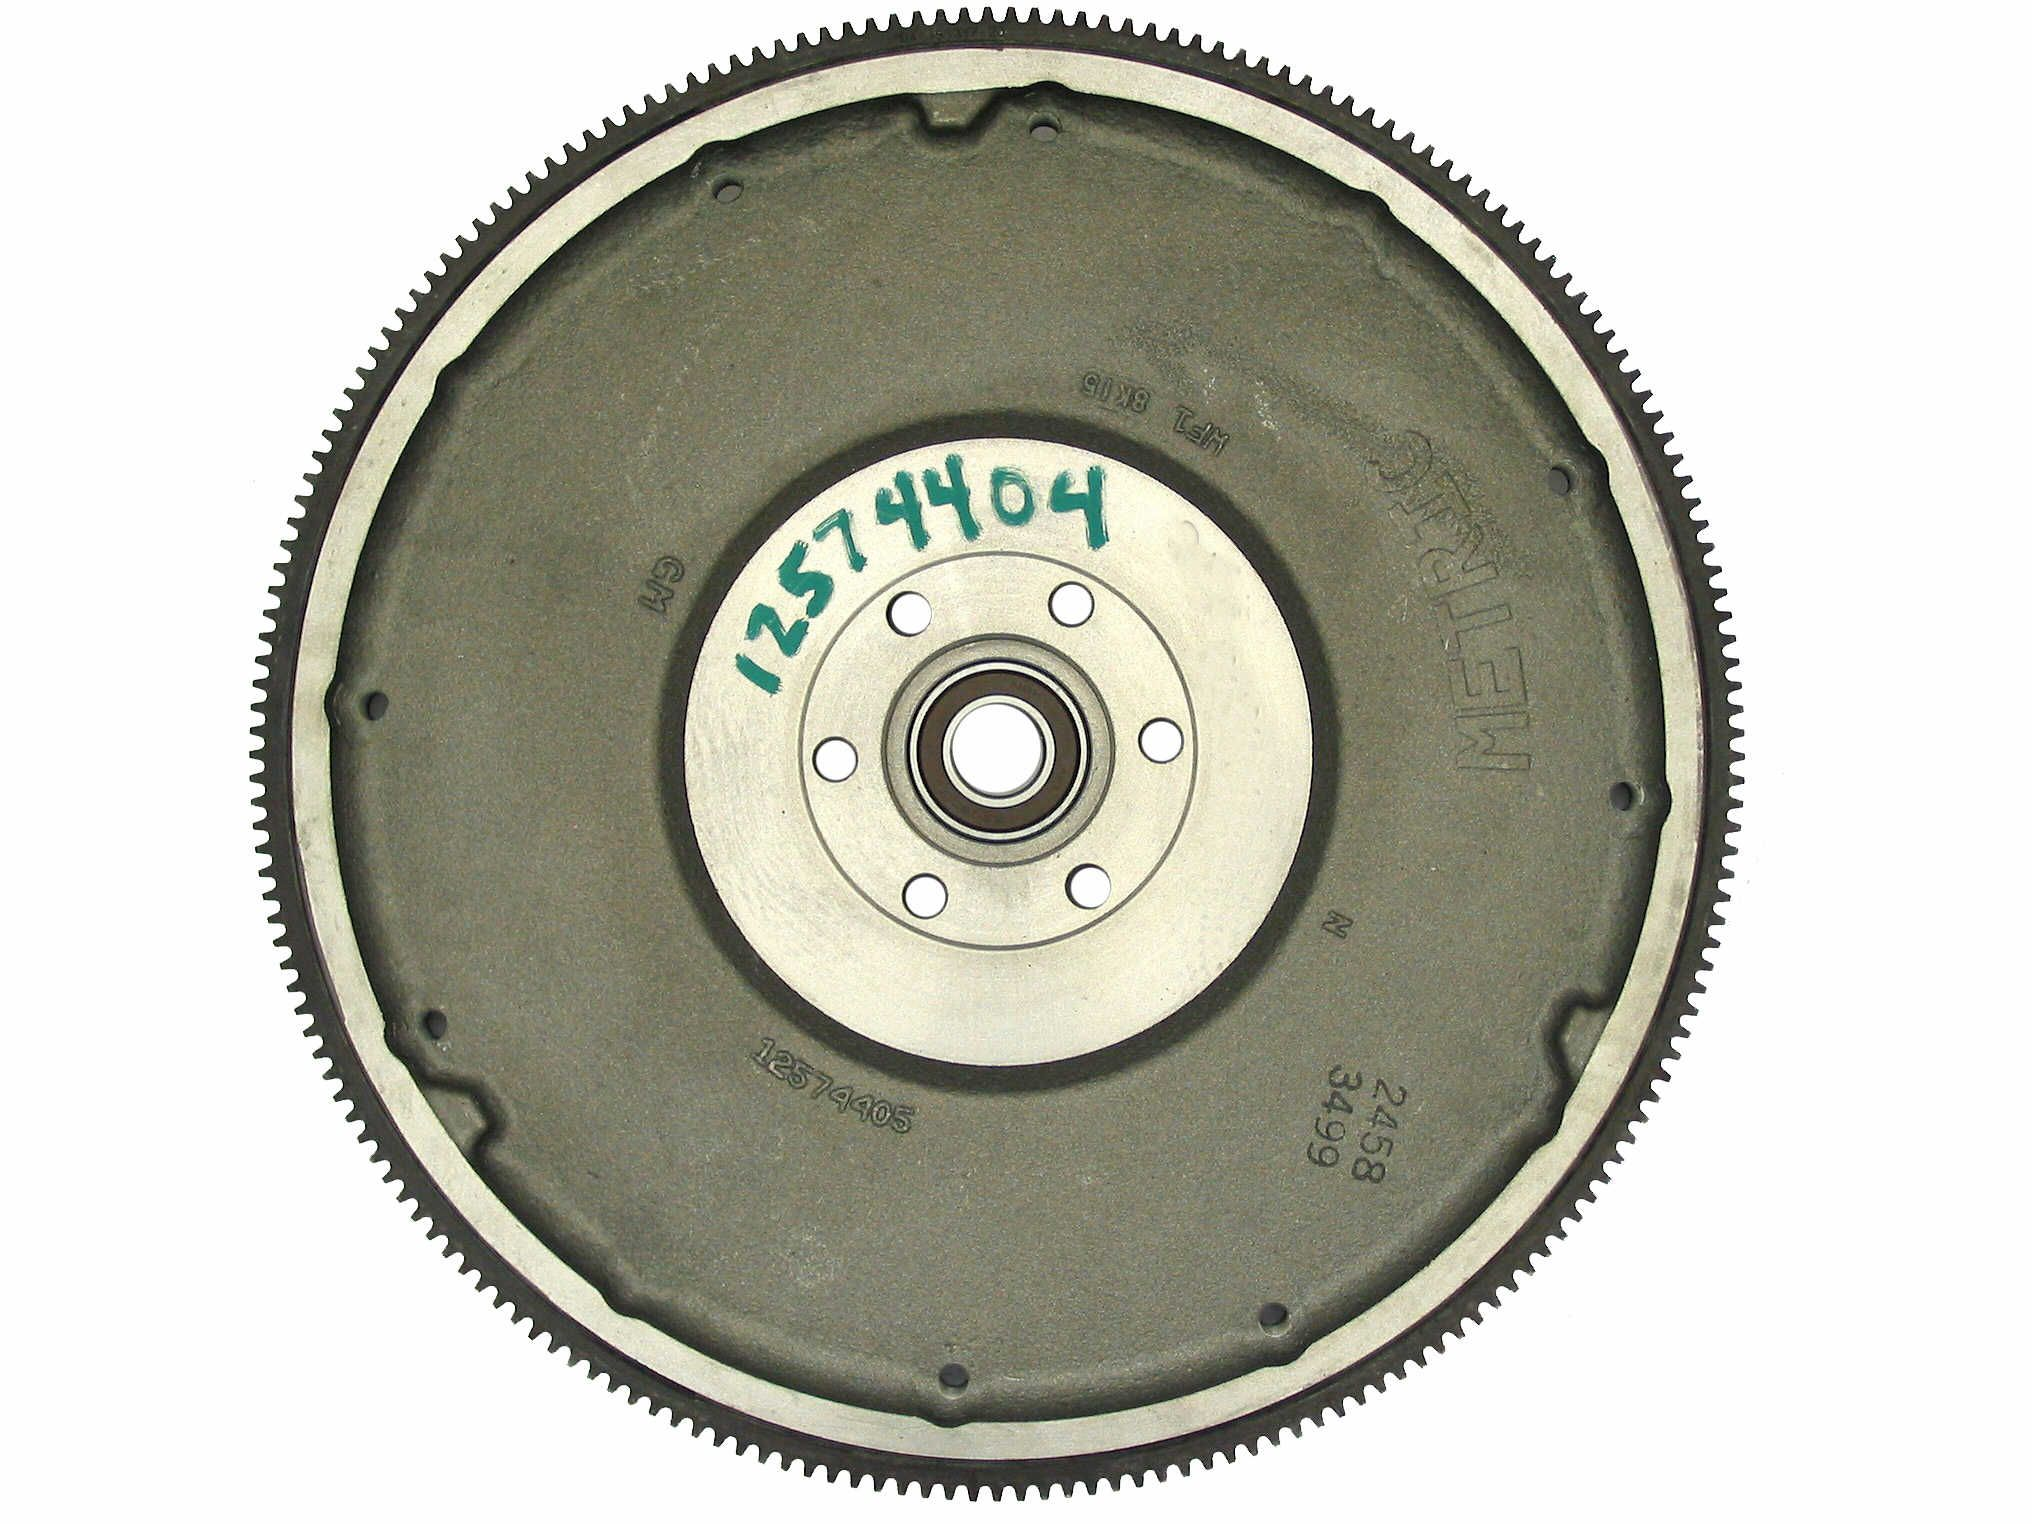 12574405 GM Medium Duty Flywheel Rear View